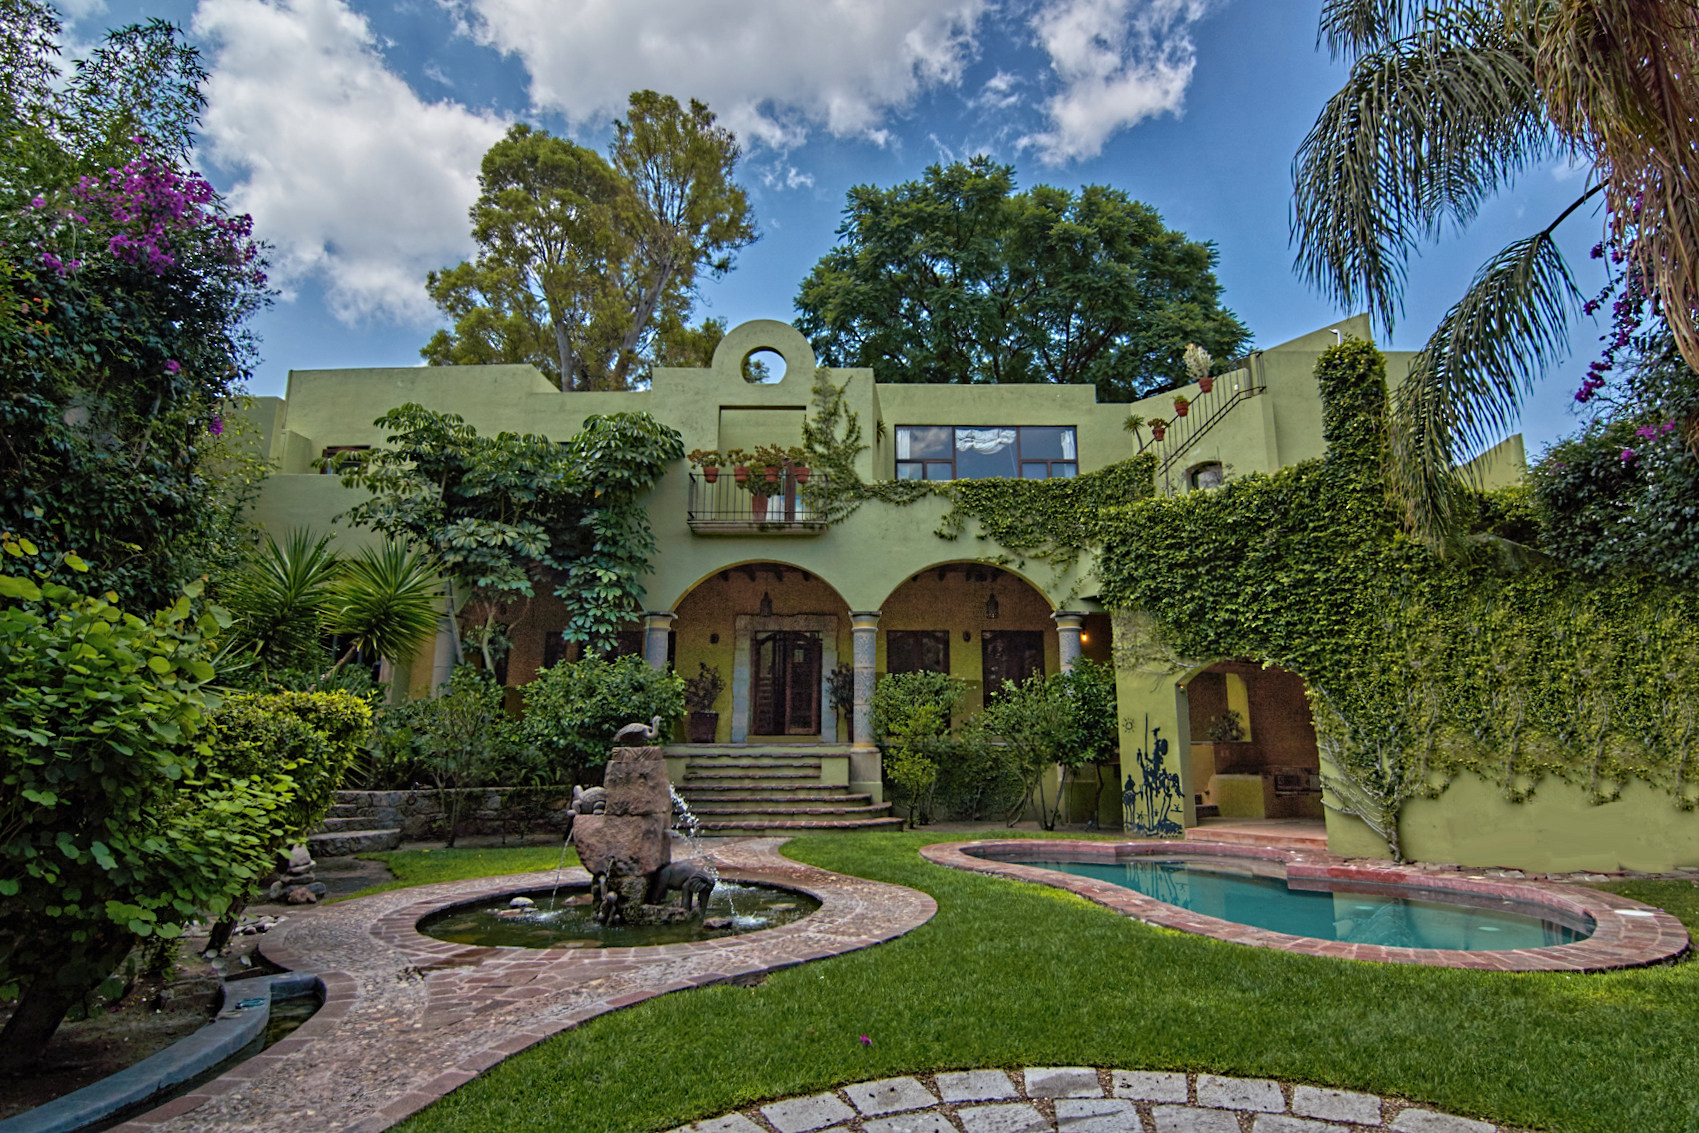 Single Family Home for Sale at Casa Imaginacion Centro, San Miguel De Allende, Guanajuato Mexico